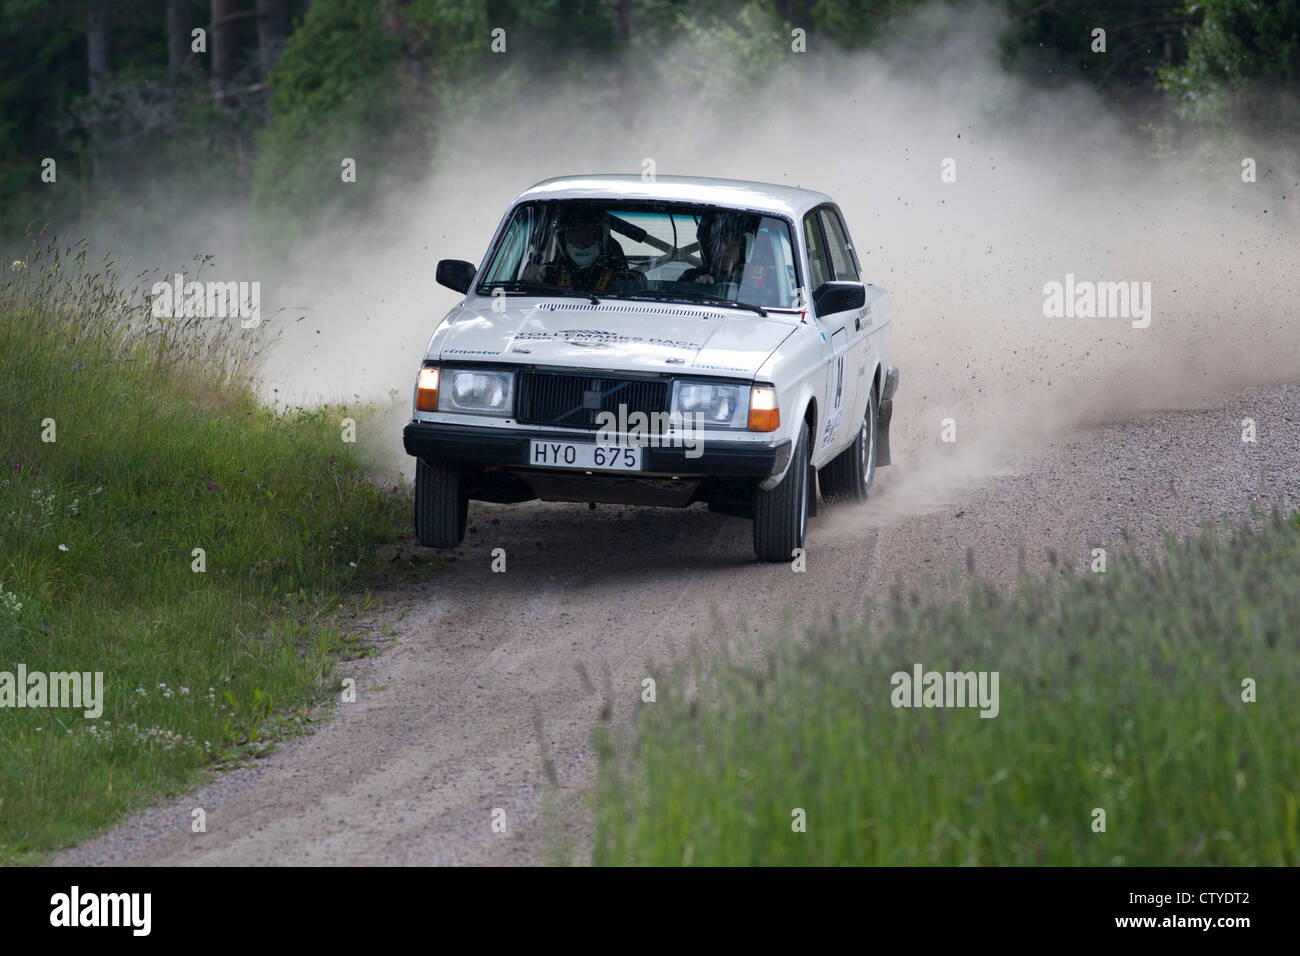 Old rally car on gravel road Stock Photo: 49776050 - Alamy